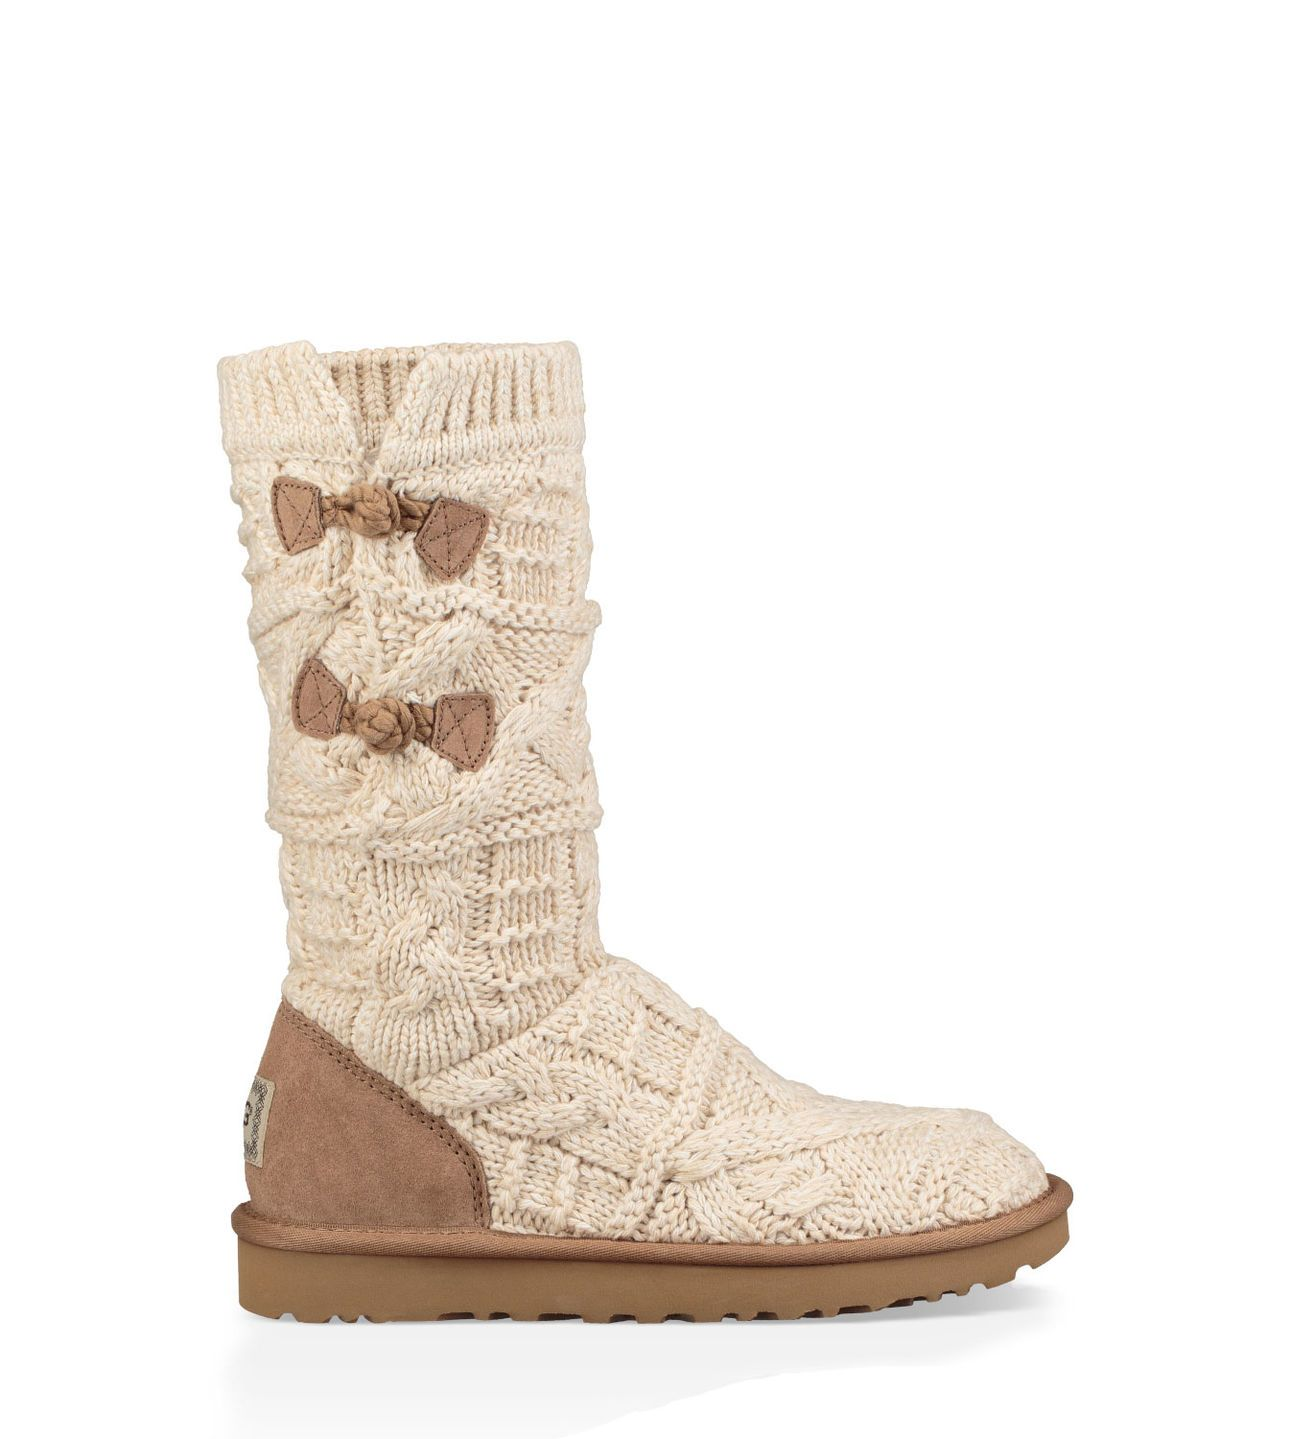 b6ed09e4410 Shop the Kalla Boot, part of the Official UGG® Women's collection ...